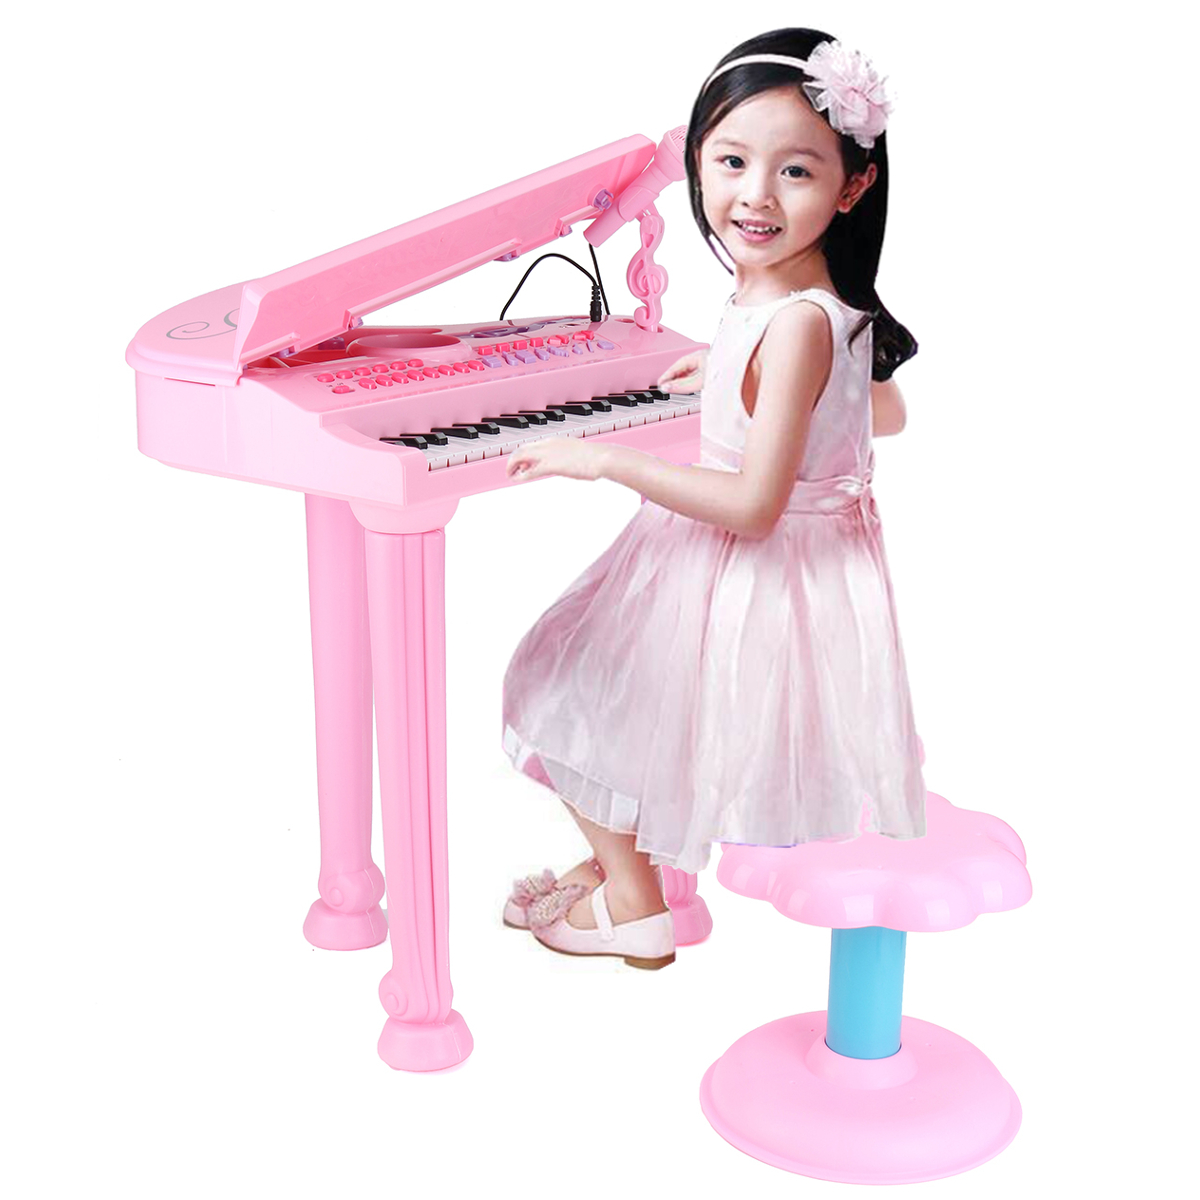 37 Key Function Panel Electronic Grand Piano Pink Musical Instrument Keyboard Organ... by